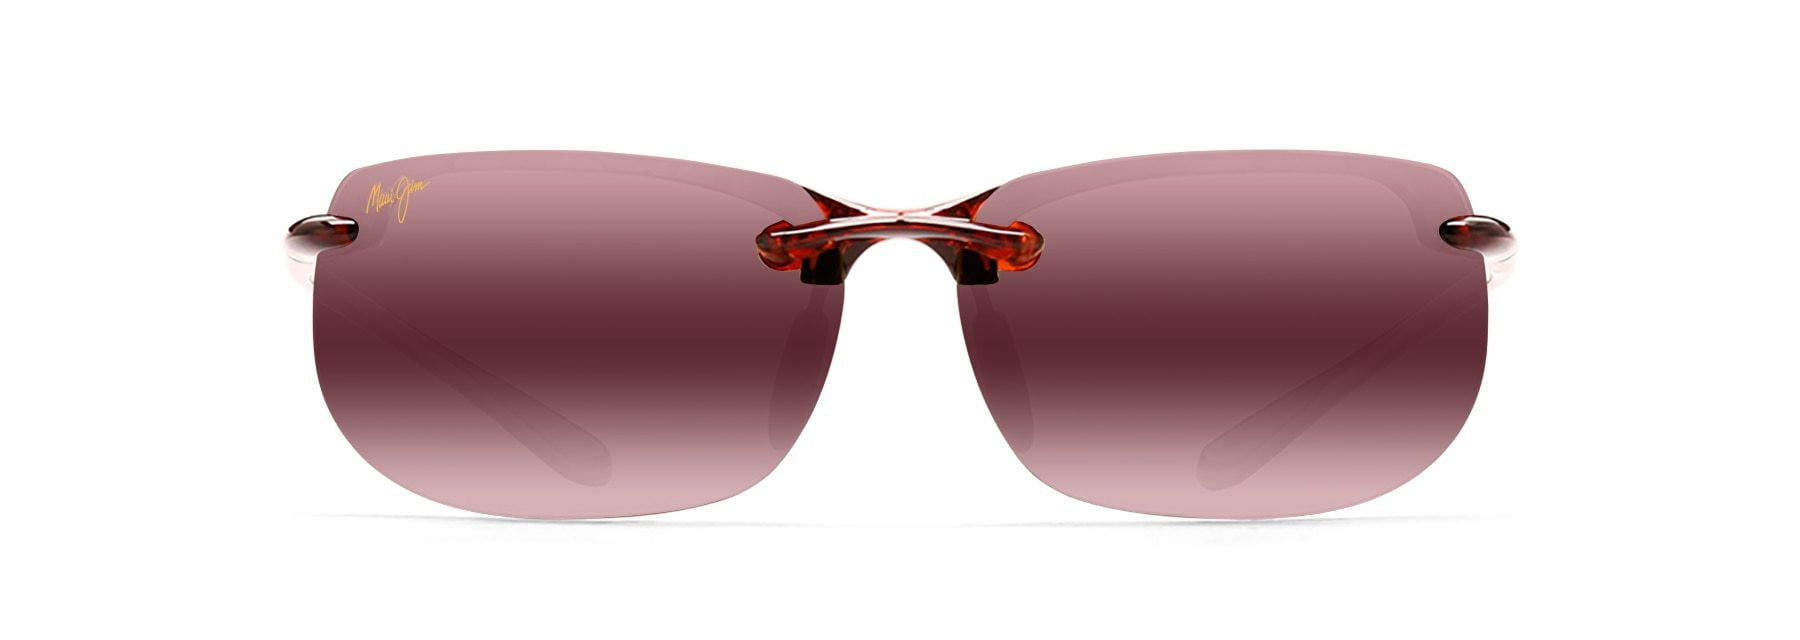 MyMaui Banyans MM412-005 Sunglasses